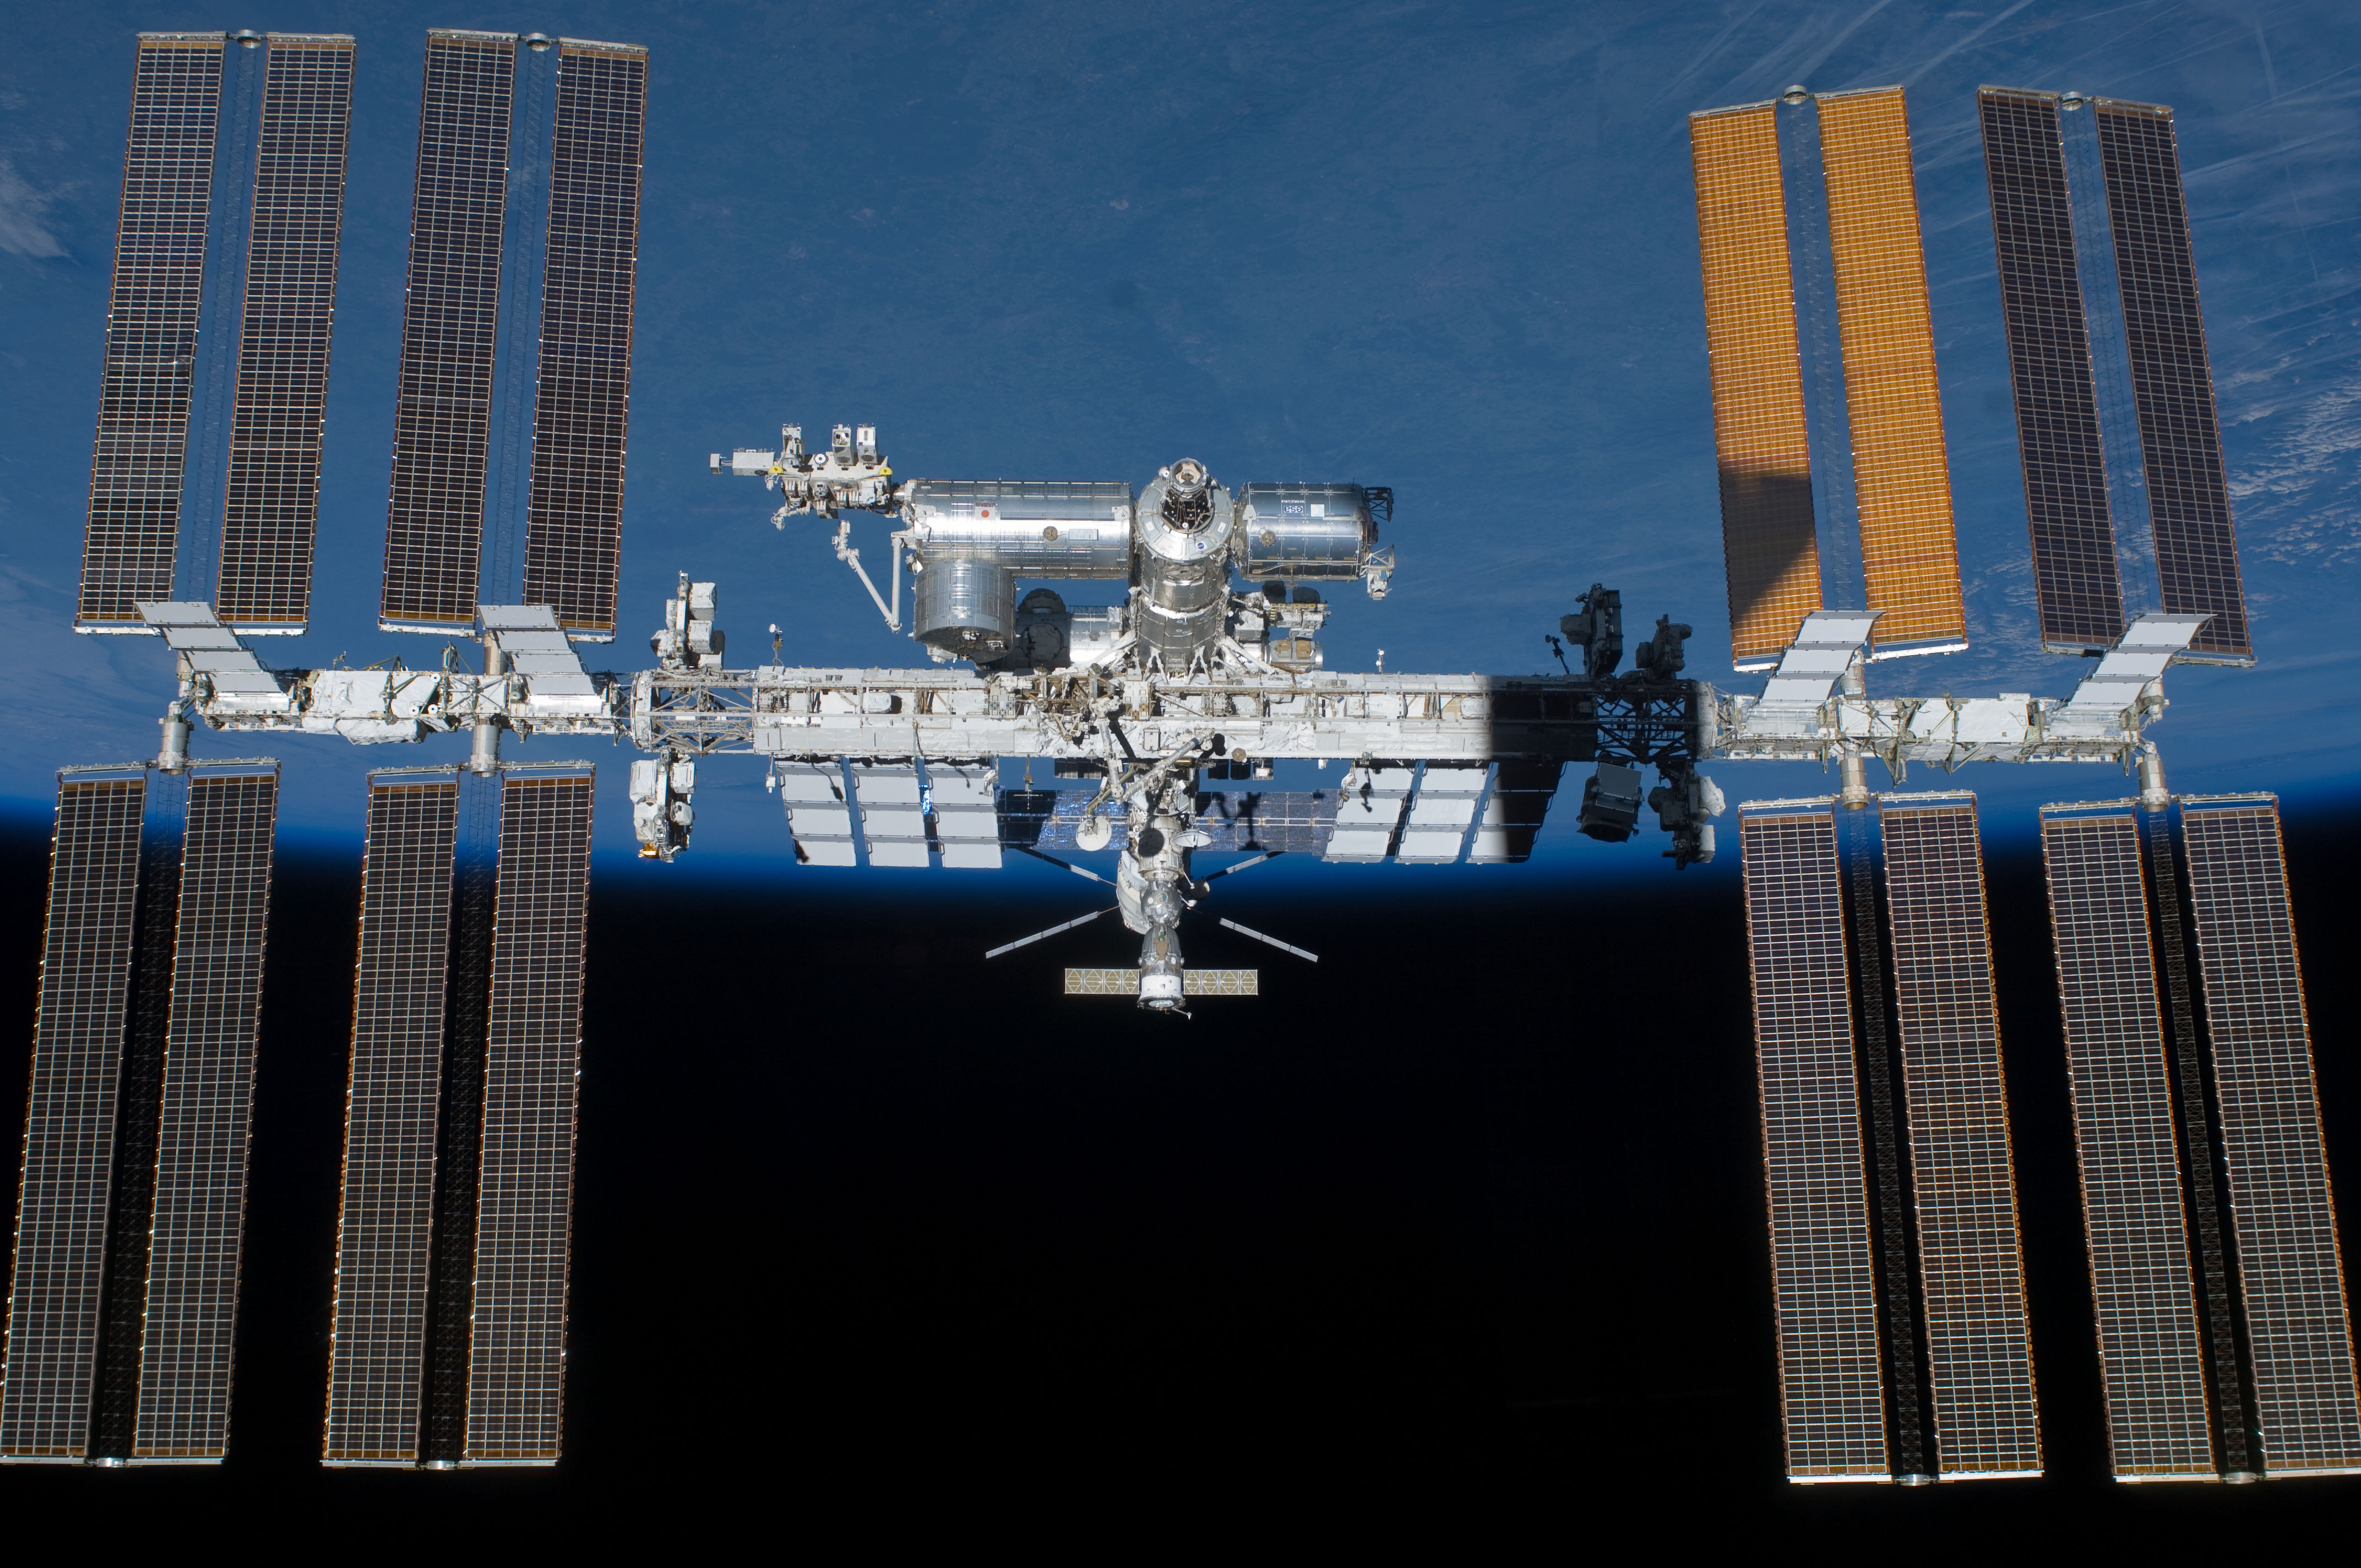 The International Space Station: Putin won't come to play anymore